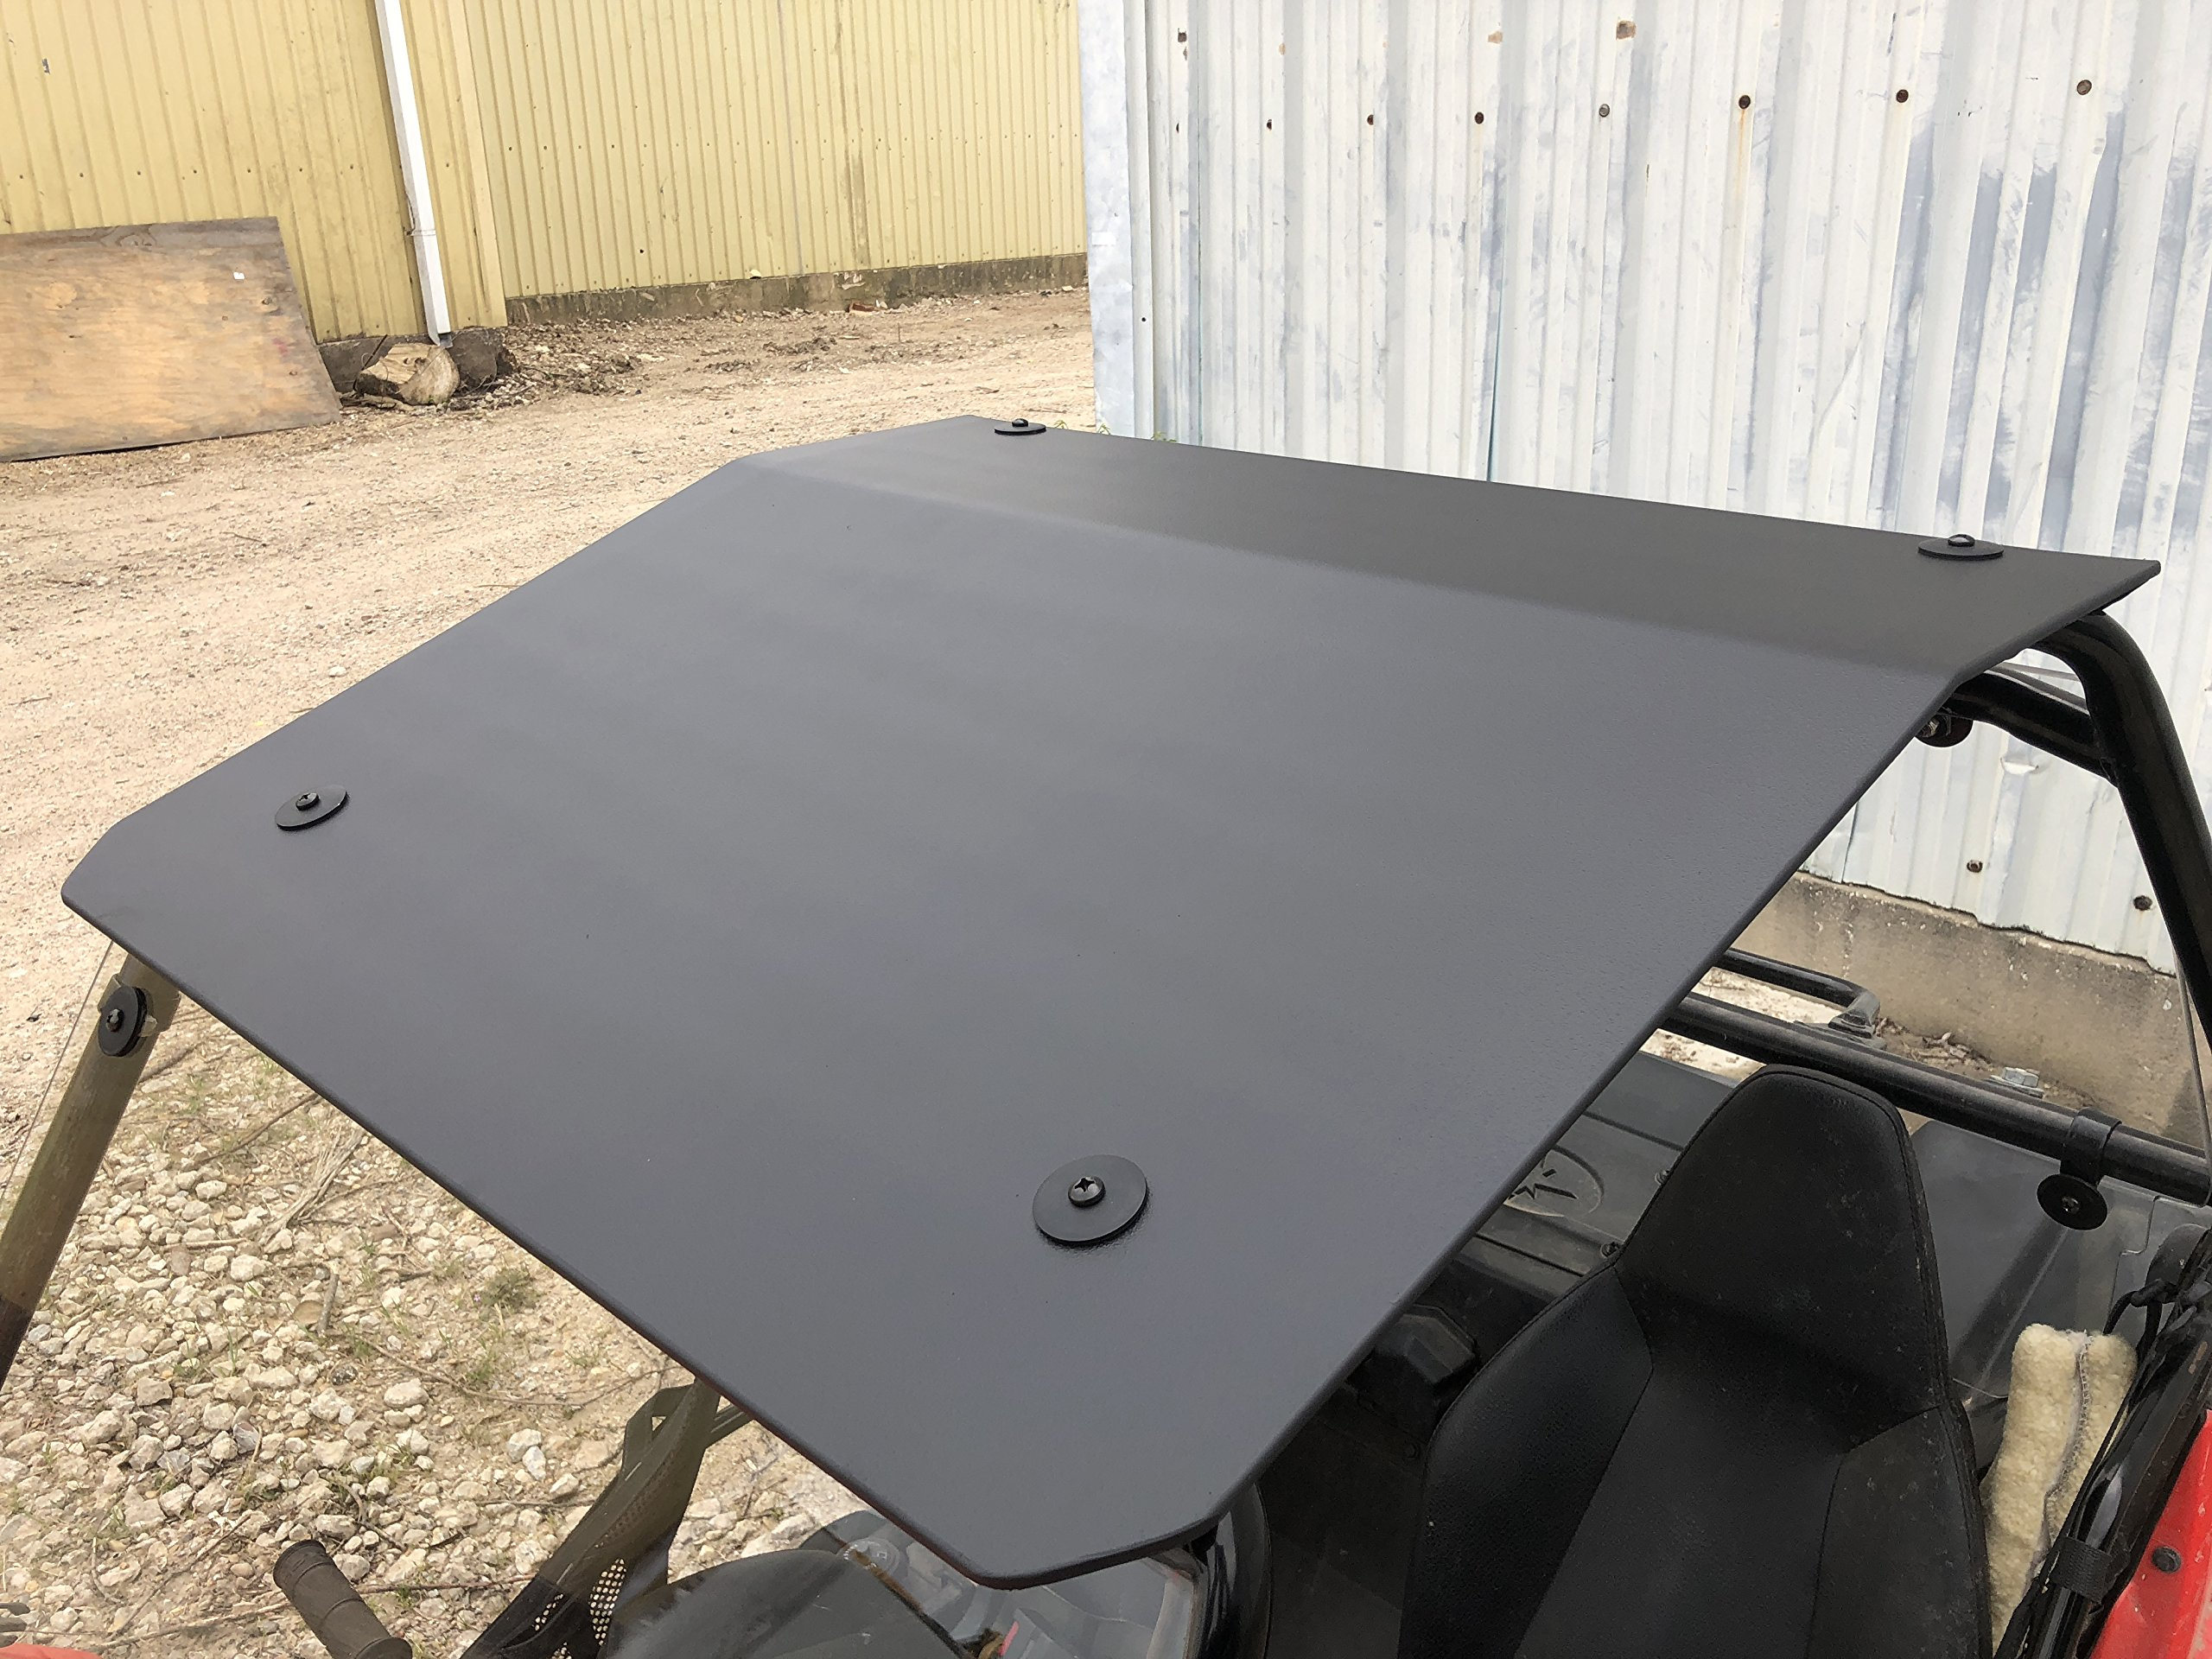 2009-2020 POLARIS RZR 170 3/16 ROOF by A&S AUDIO AND SHIELD DESIGNS